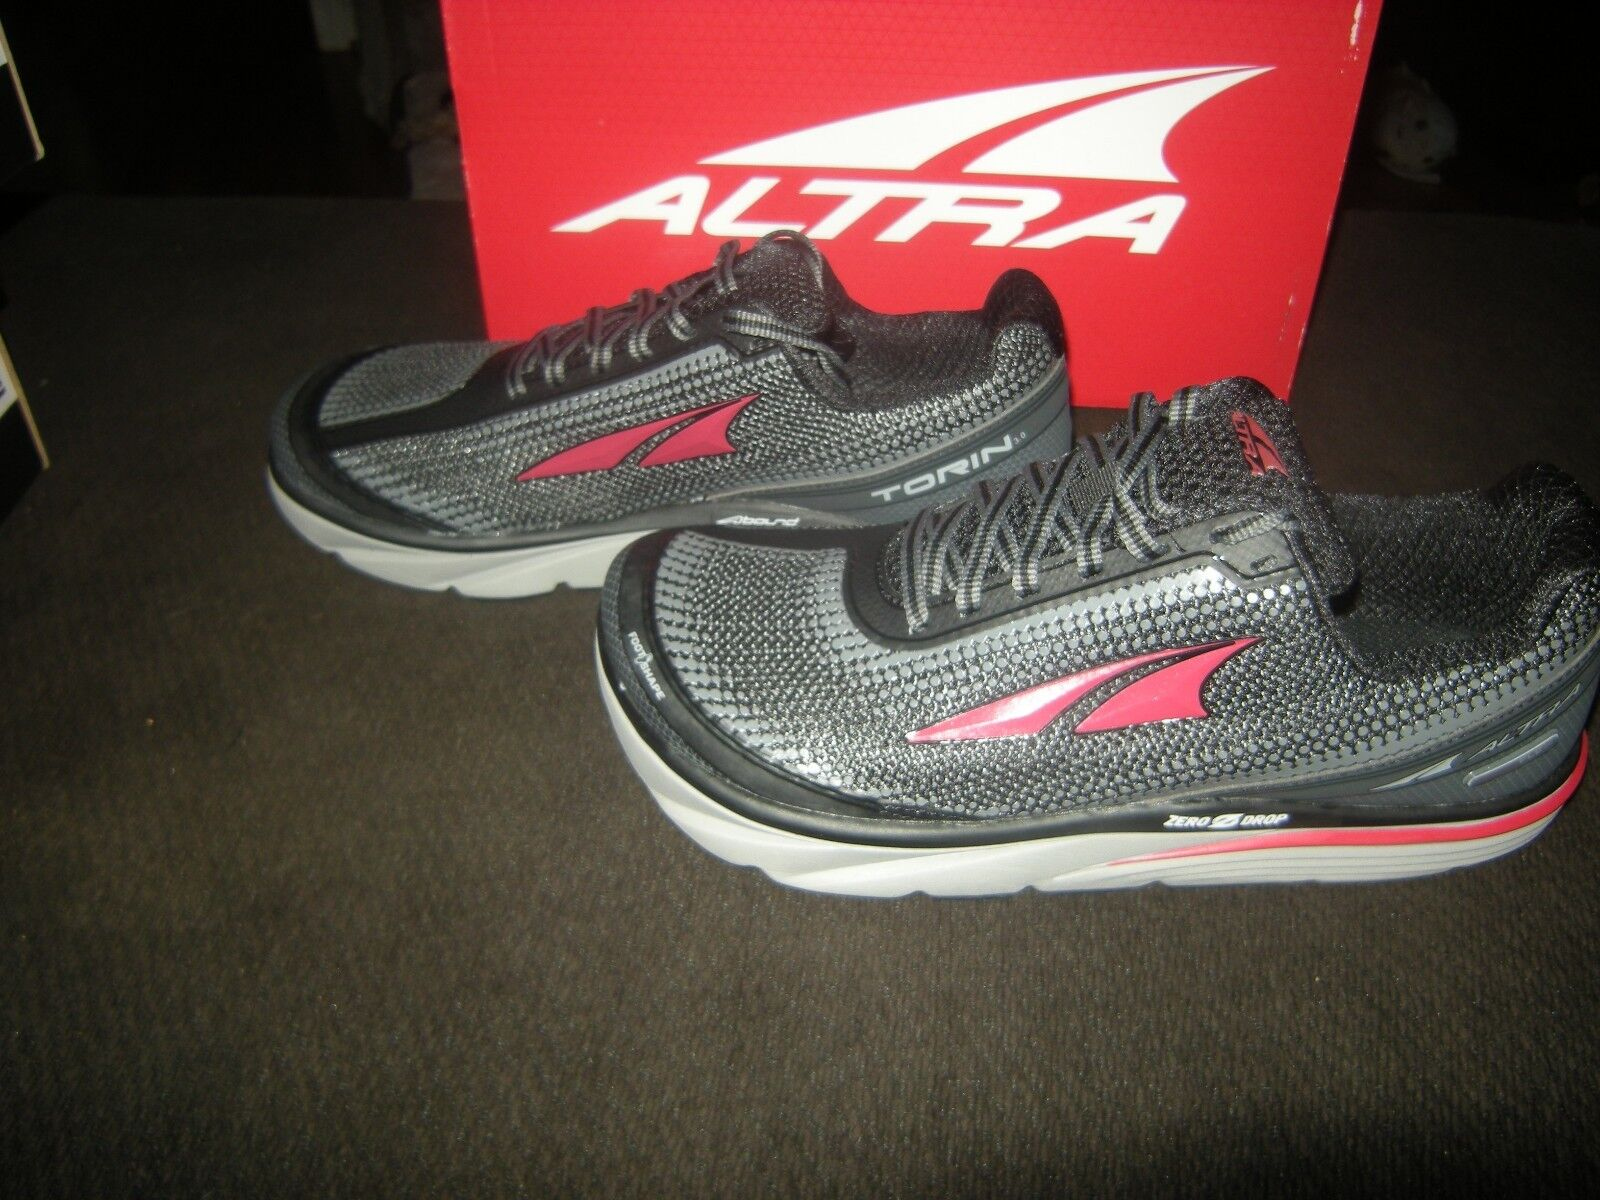 New Mens Black & Red Altra Torin 3.0 Running Shoes, Size 11.5